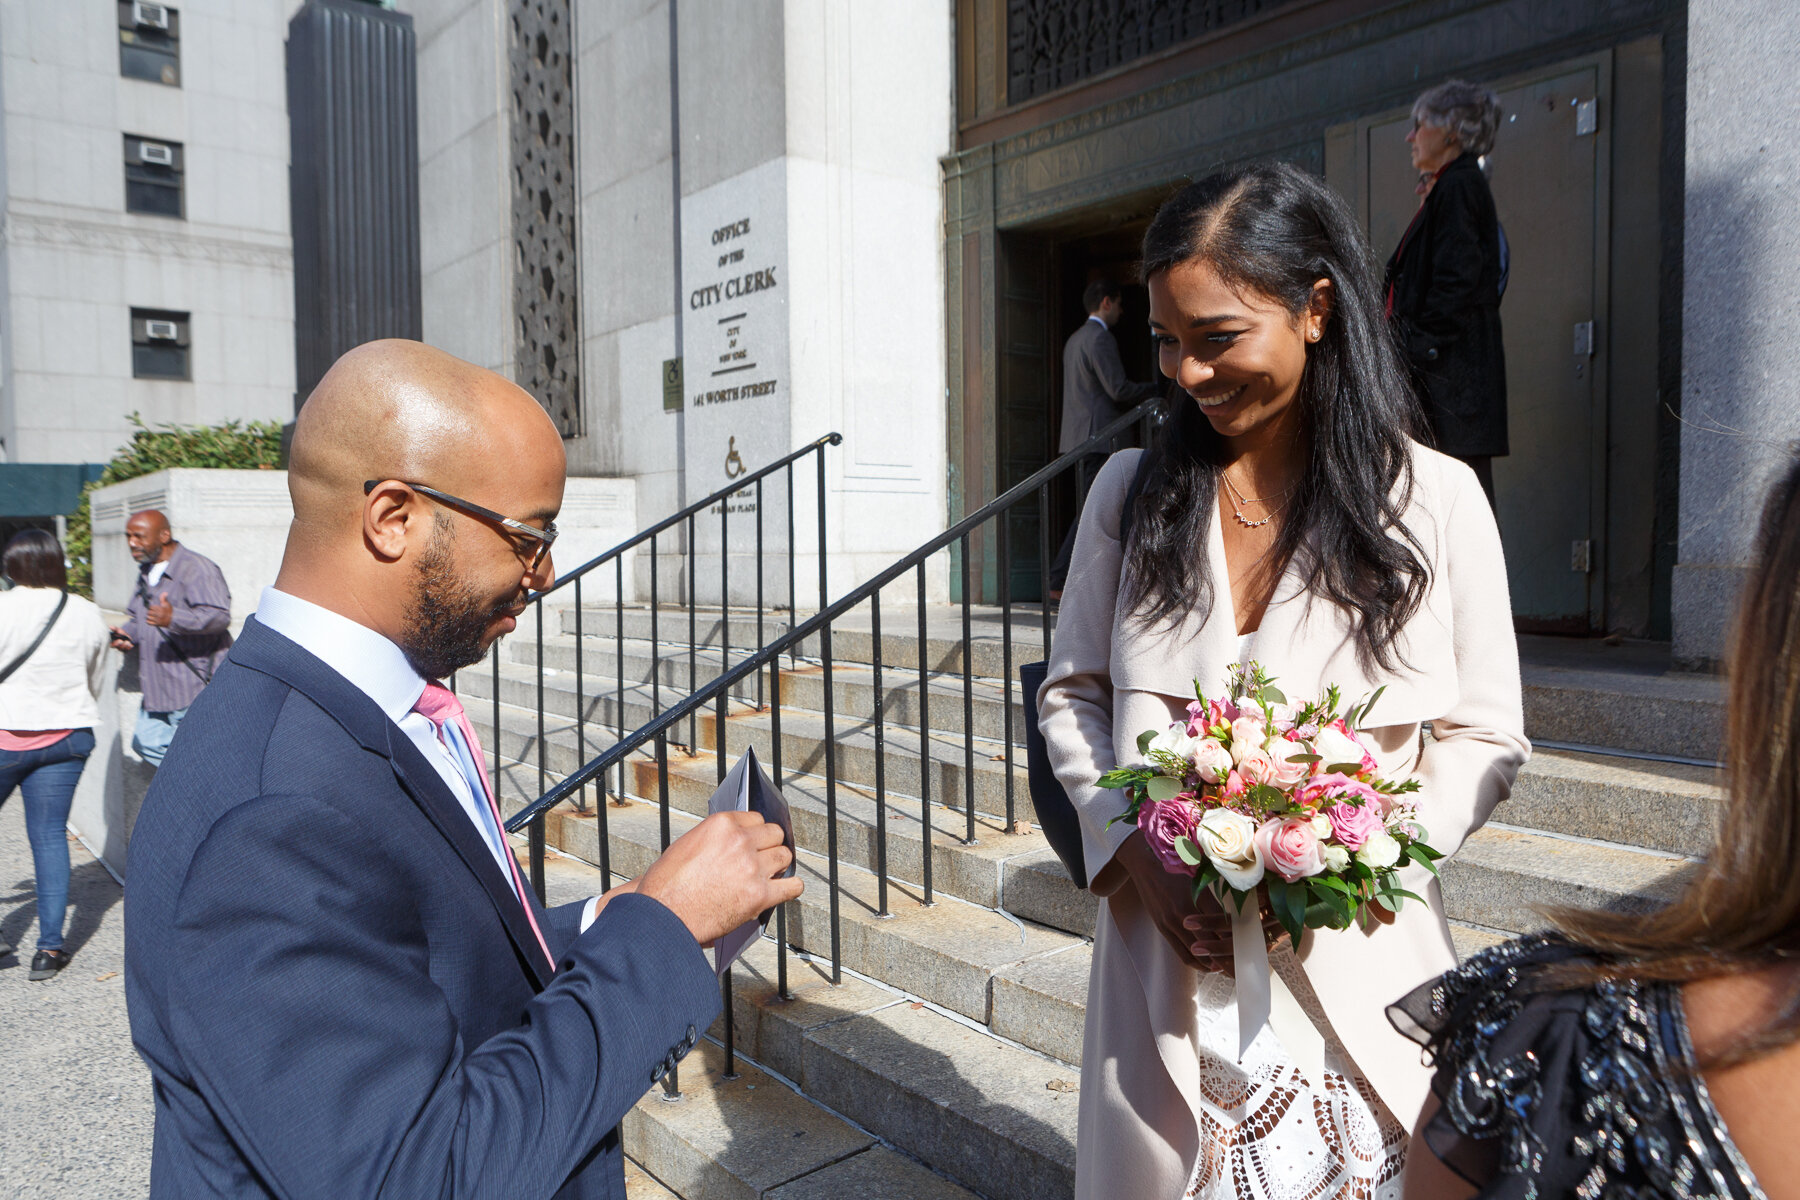 NYC Manhattan City Hall Wedding _ Jonathan Heisler _ 10042019 _0021.jpg